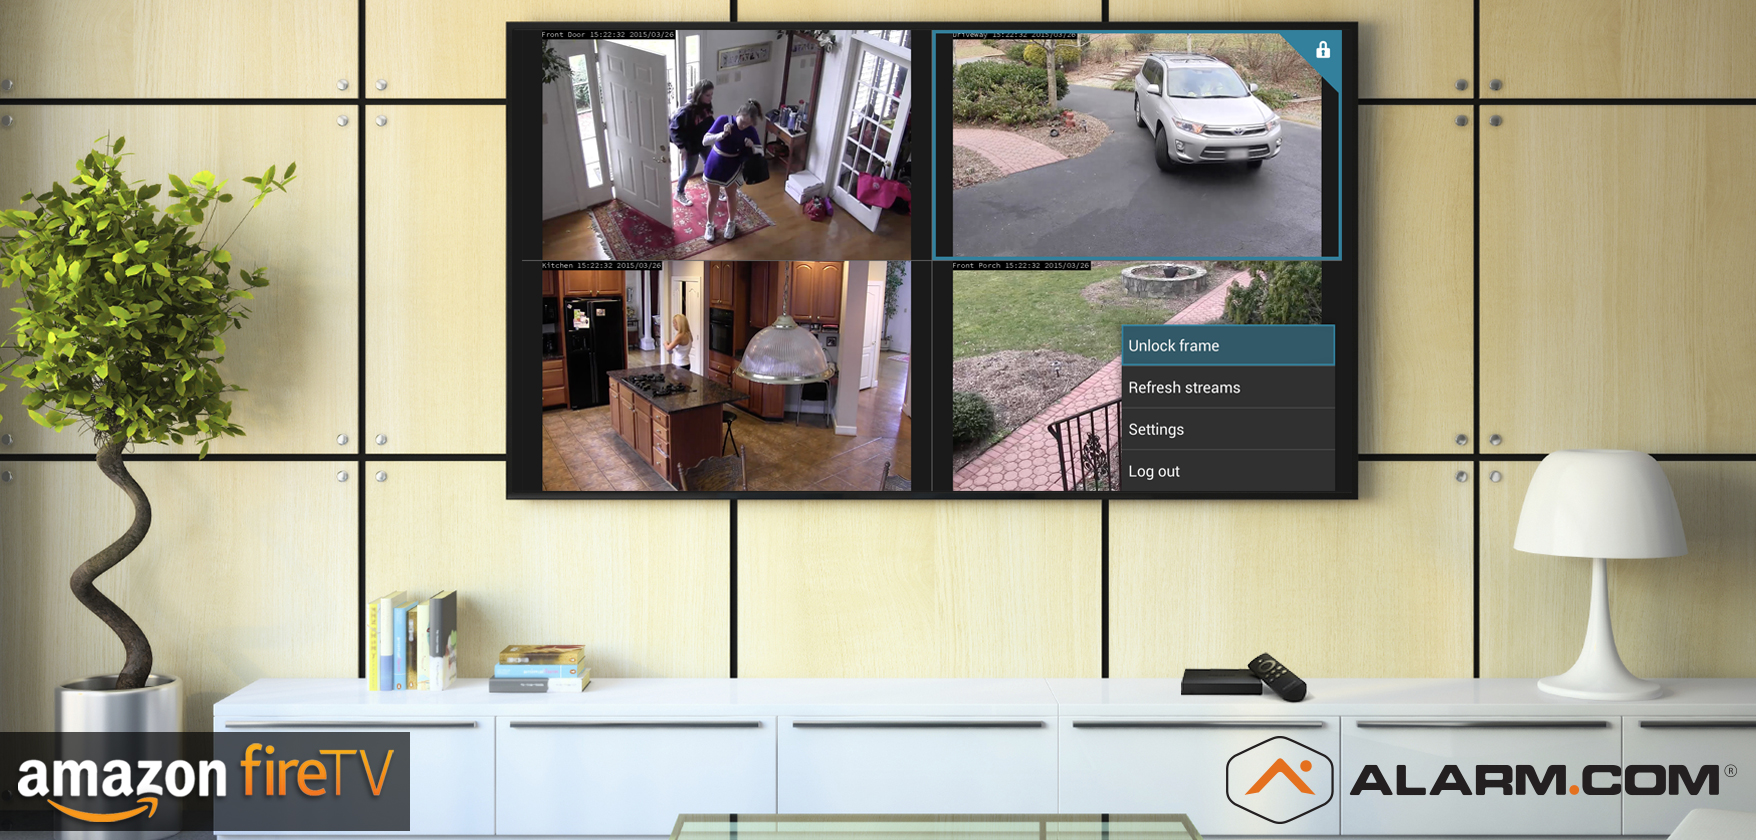 Video Monitoring from the Couch: Alarm com's Amazon Fire TV app